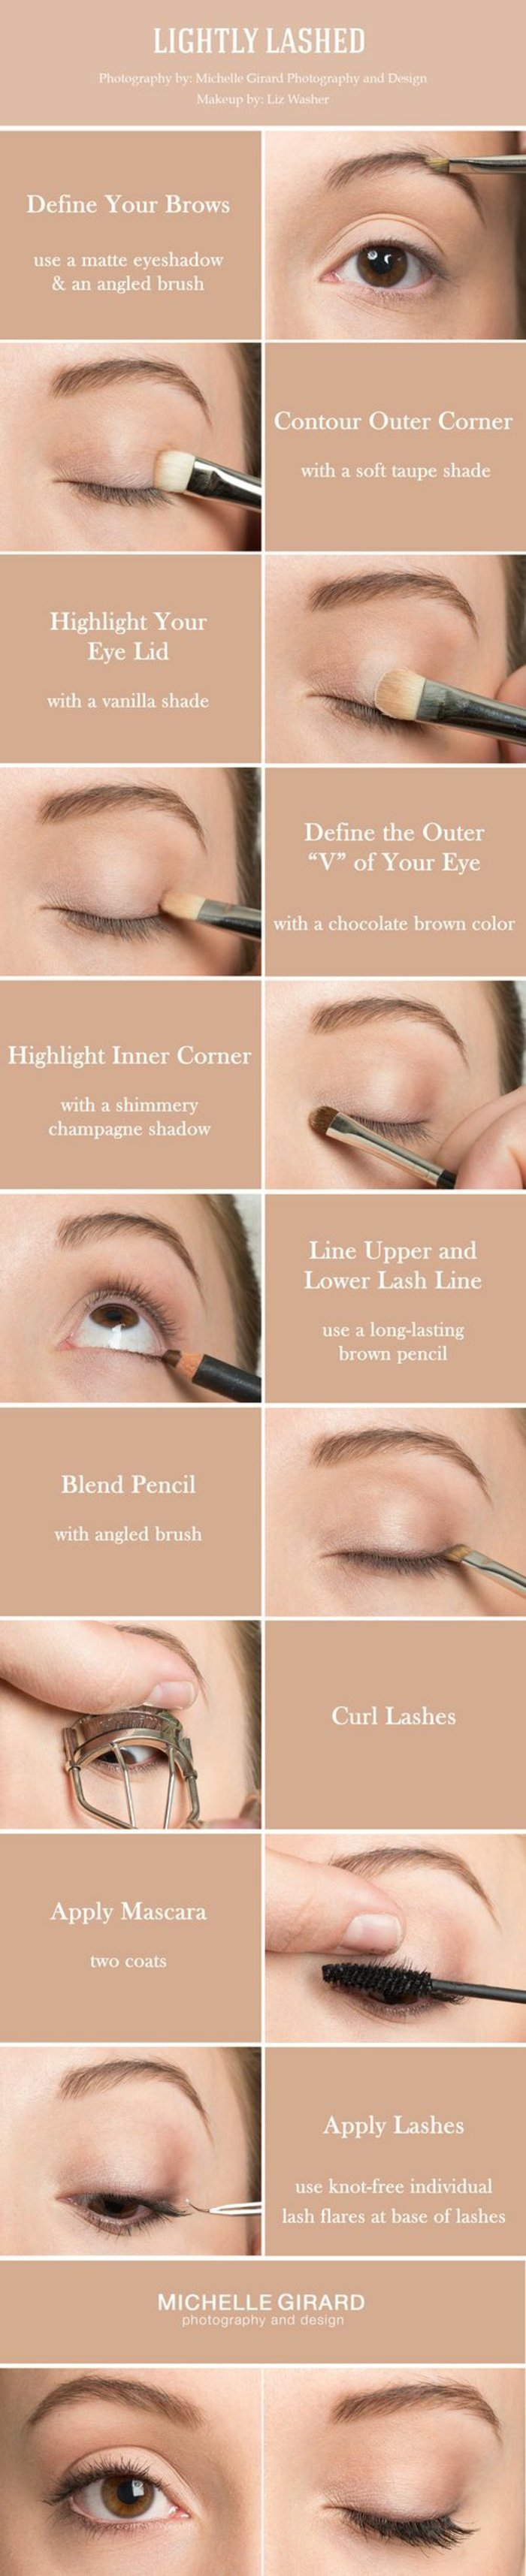 00-comment-se-maquiller-les-yeux-marrons-diy-maquillage-discret-idees-tuto